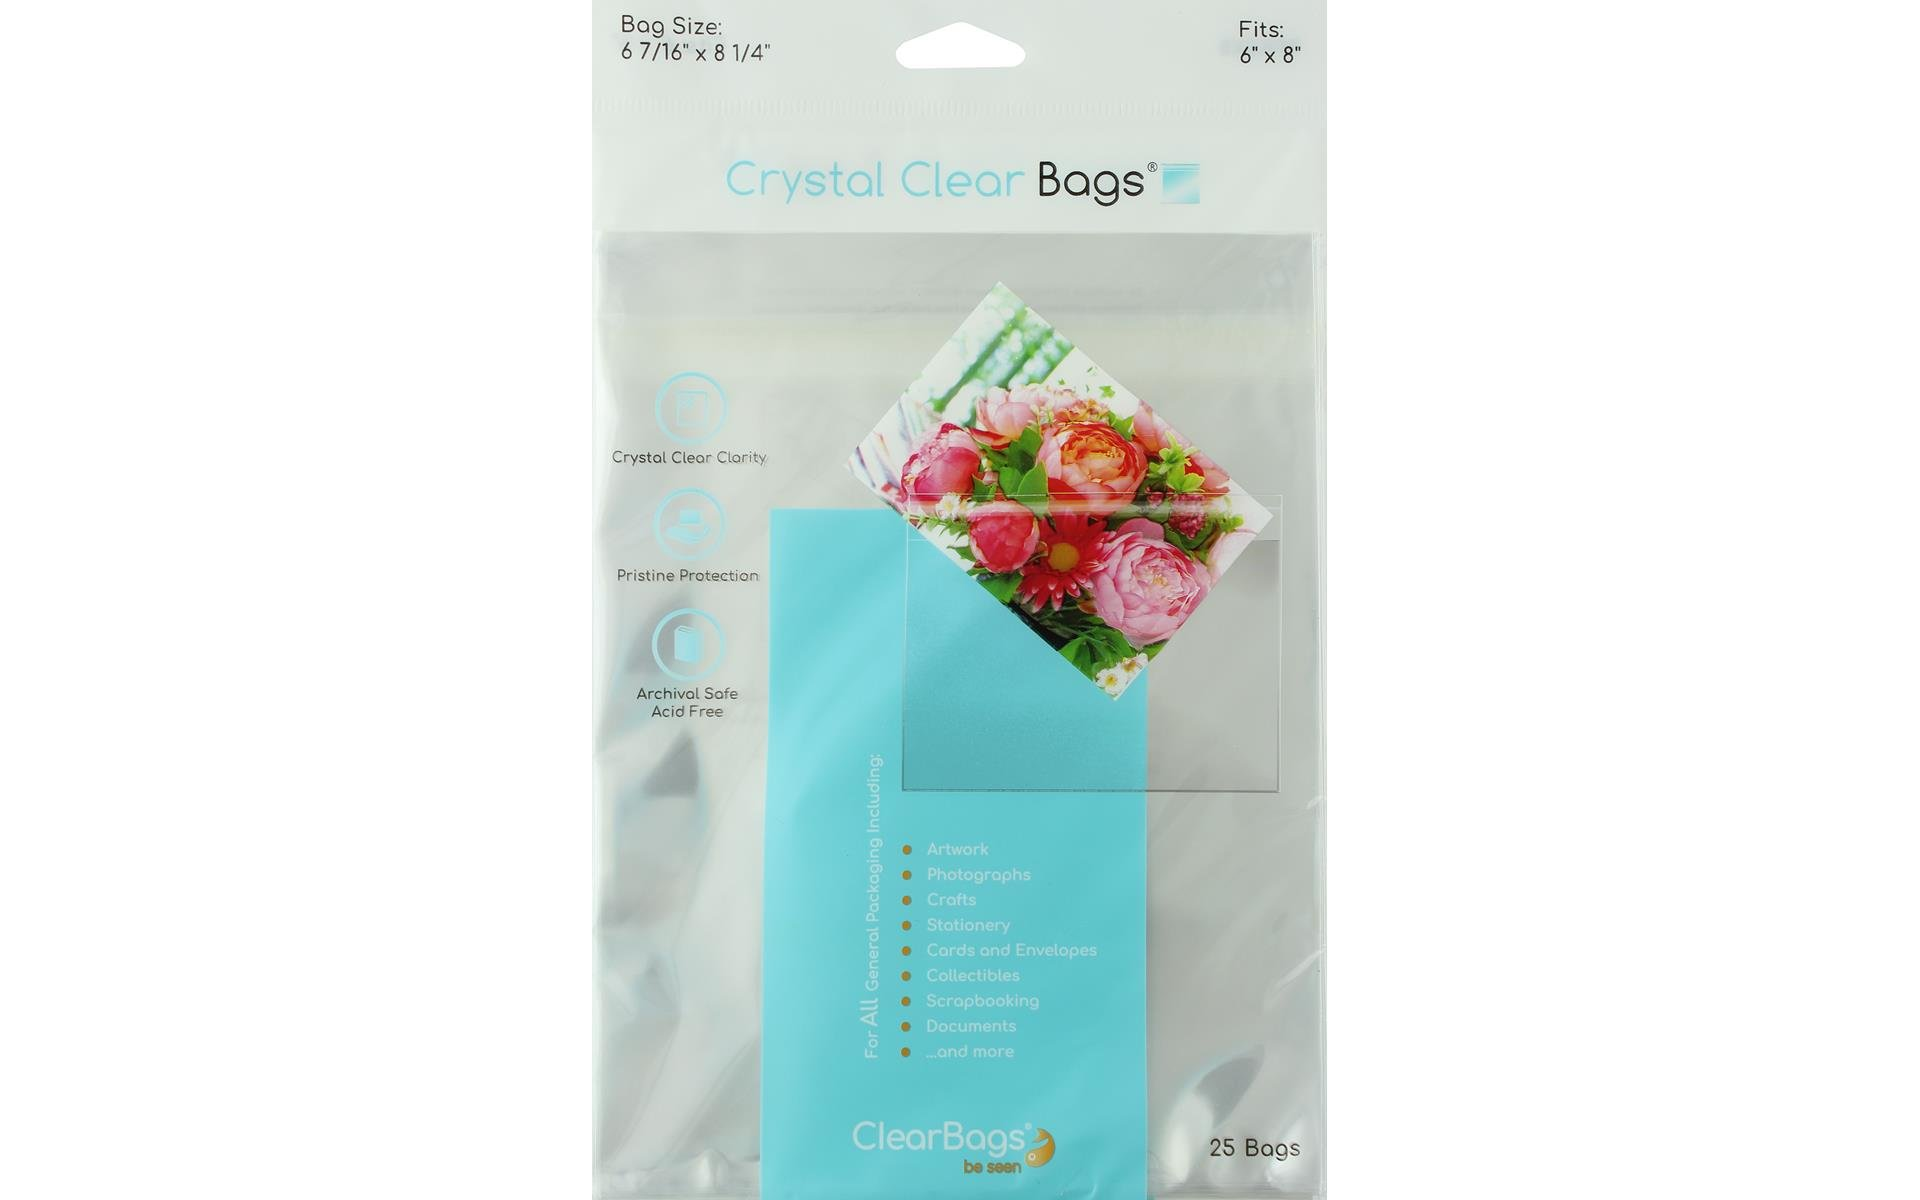 ClearBags Crystal Clear Bag 6x8